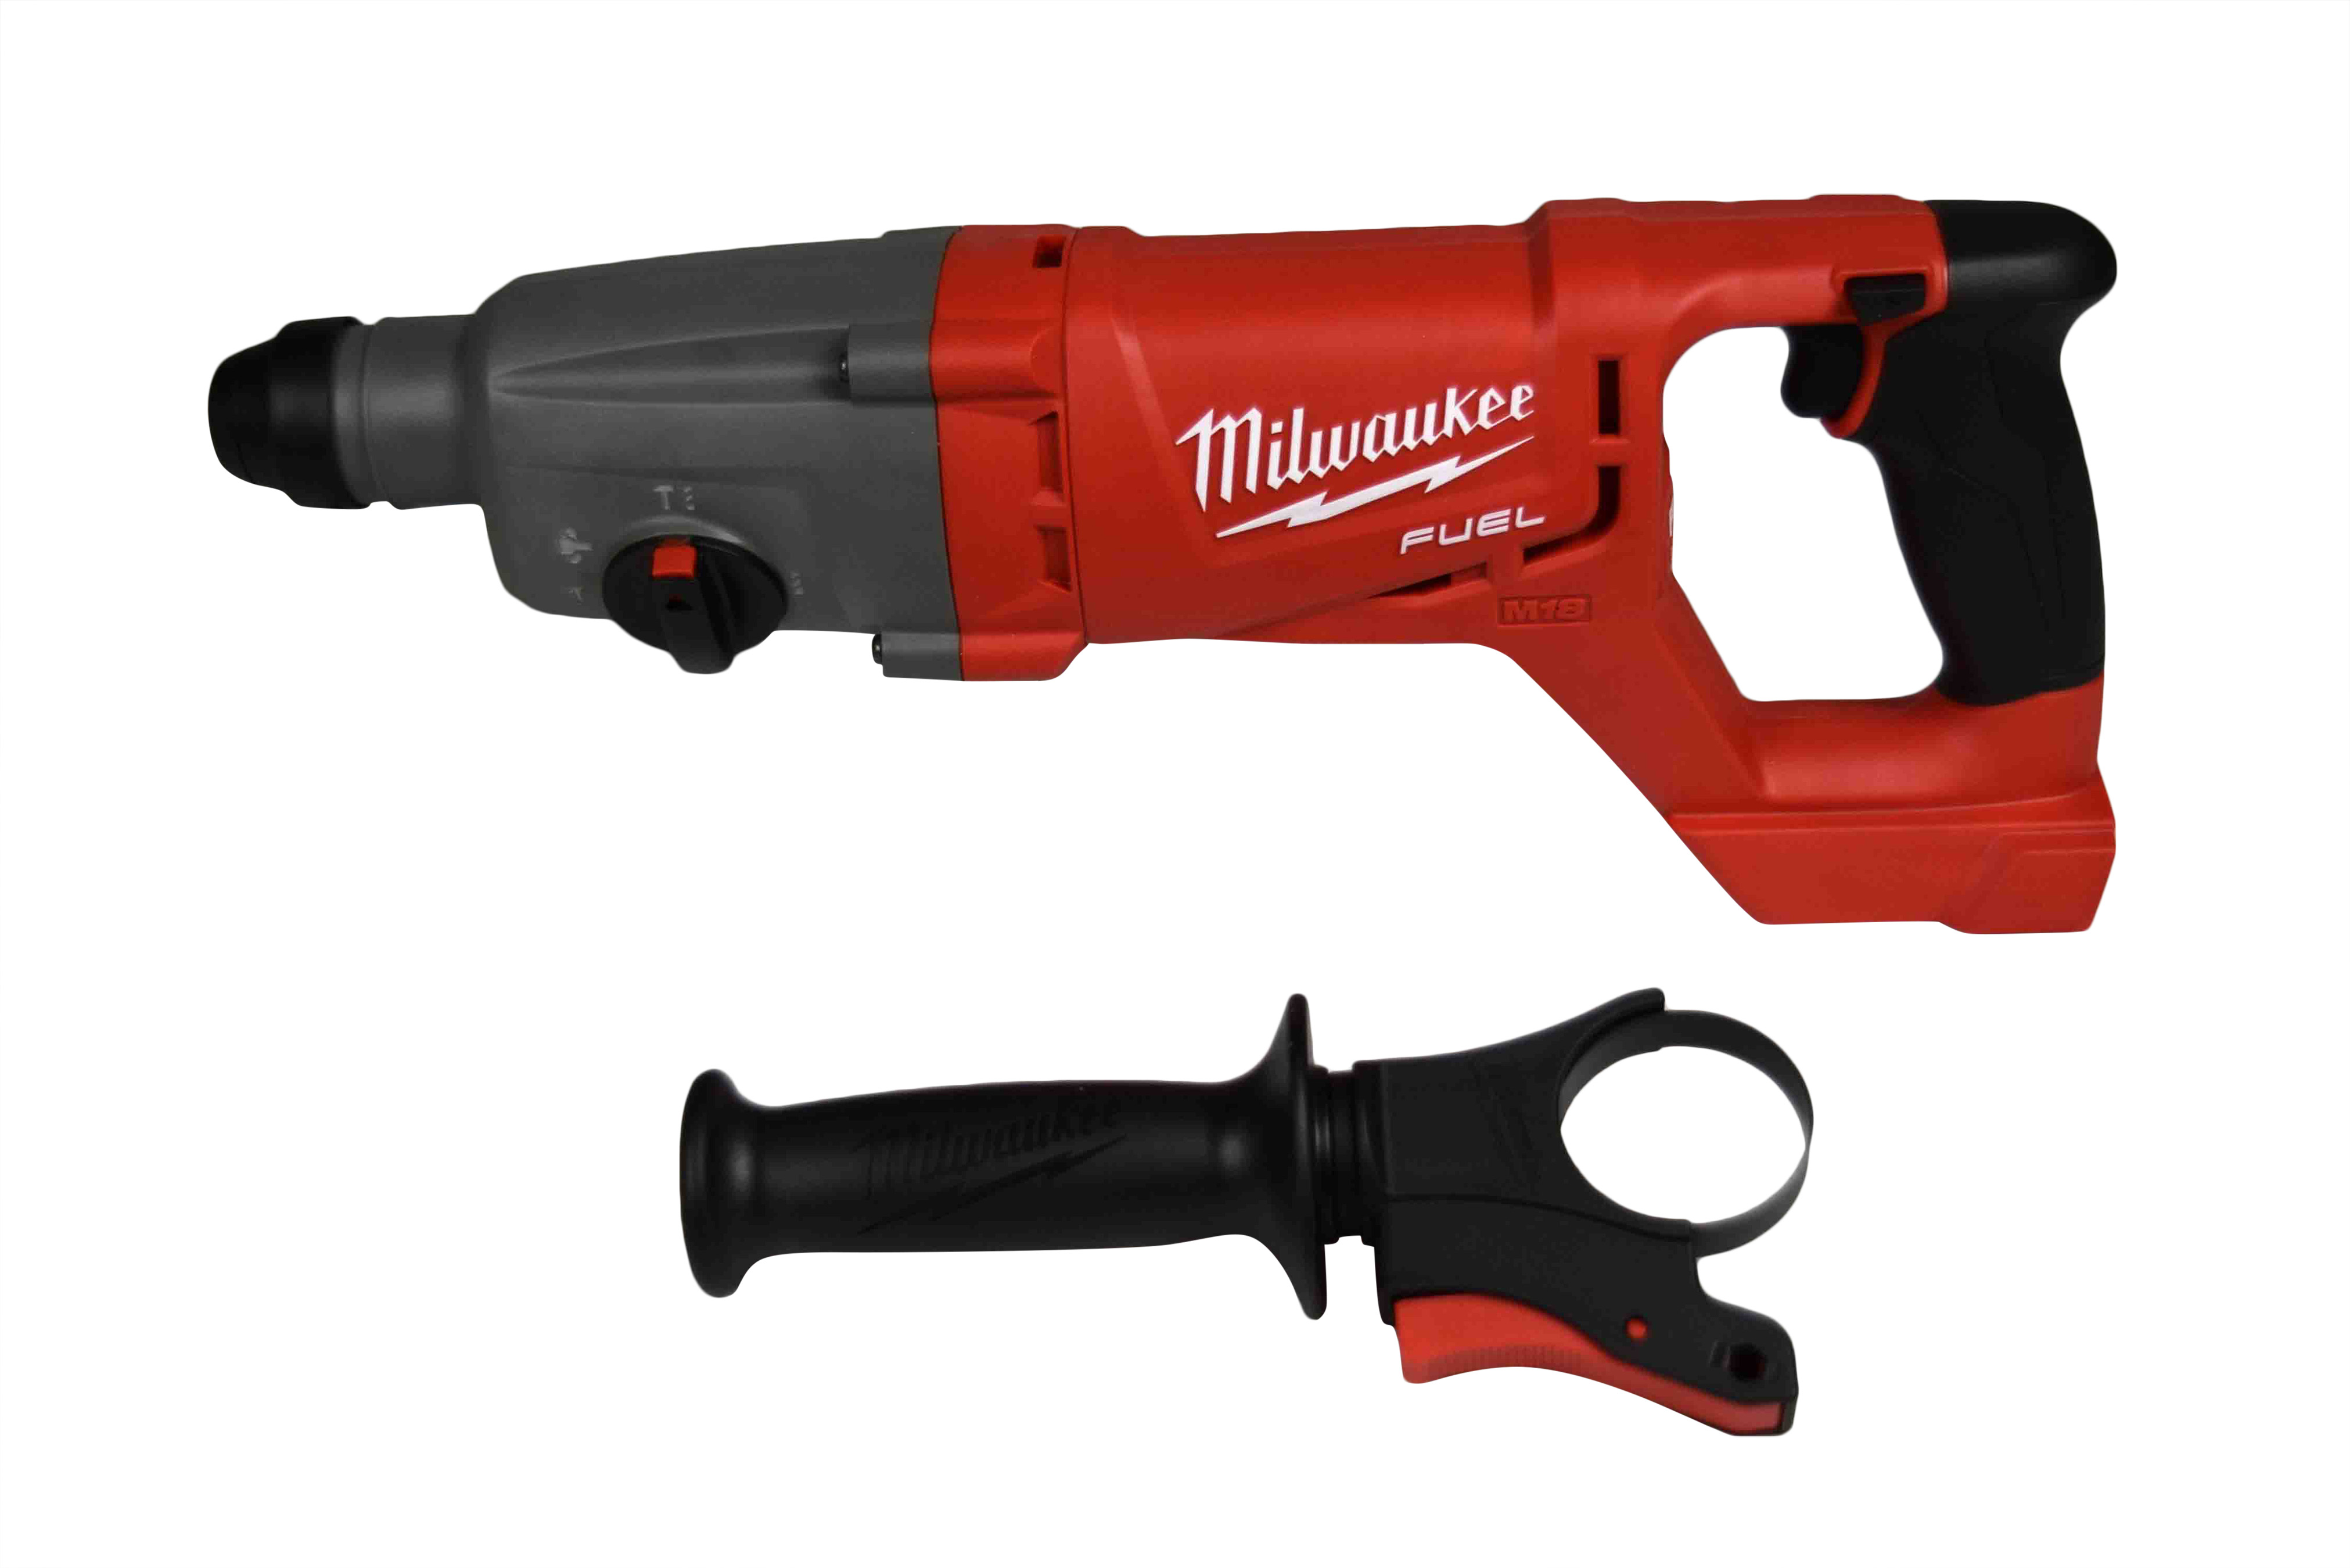 Milwaukee 2713-20 M18 Fuel 1 In. SDS Plus D-handle Rotary Hammer - Tool Only